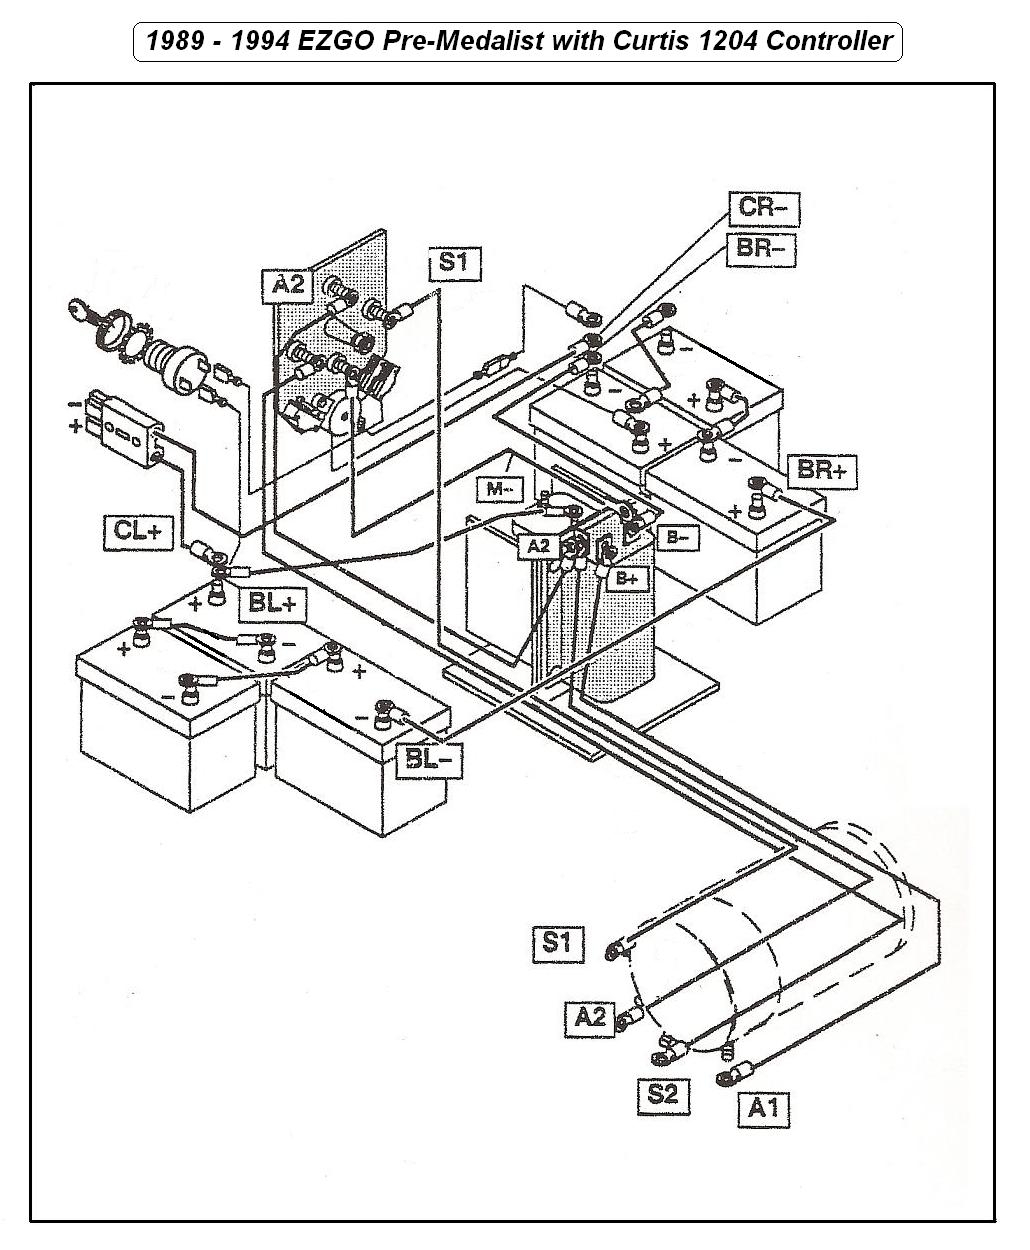 hight resolution of golf cart electrical diagram wiring diagram blogs power wheels electrical diagram 1987 48 volt ezgo solenoid